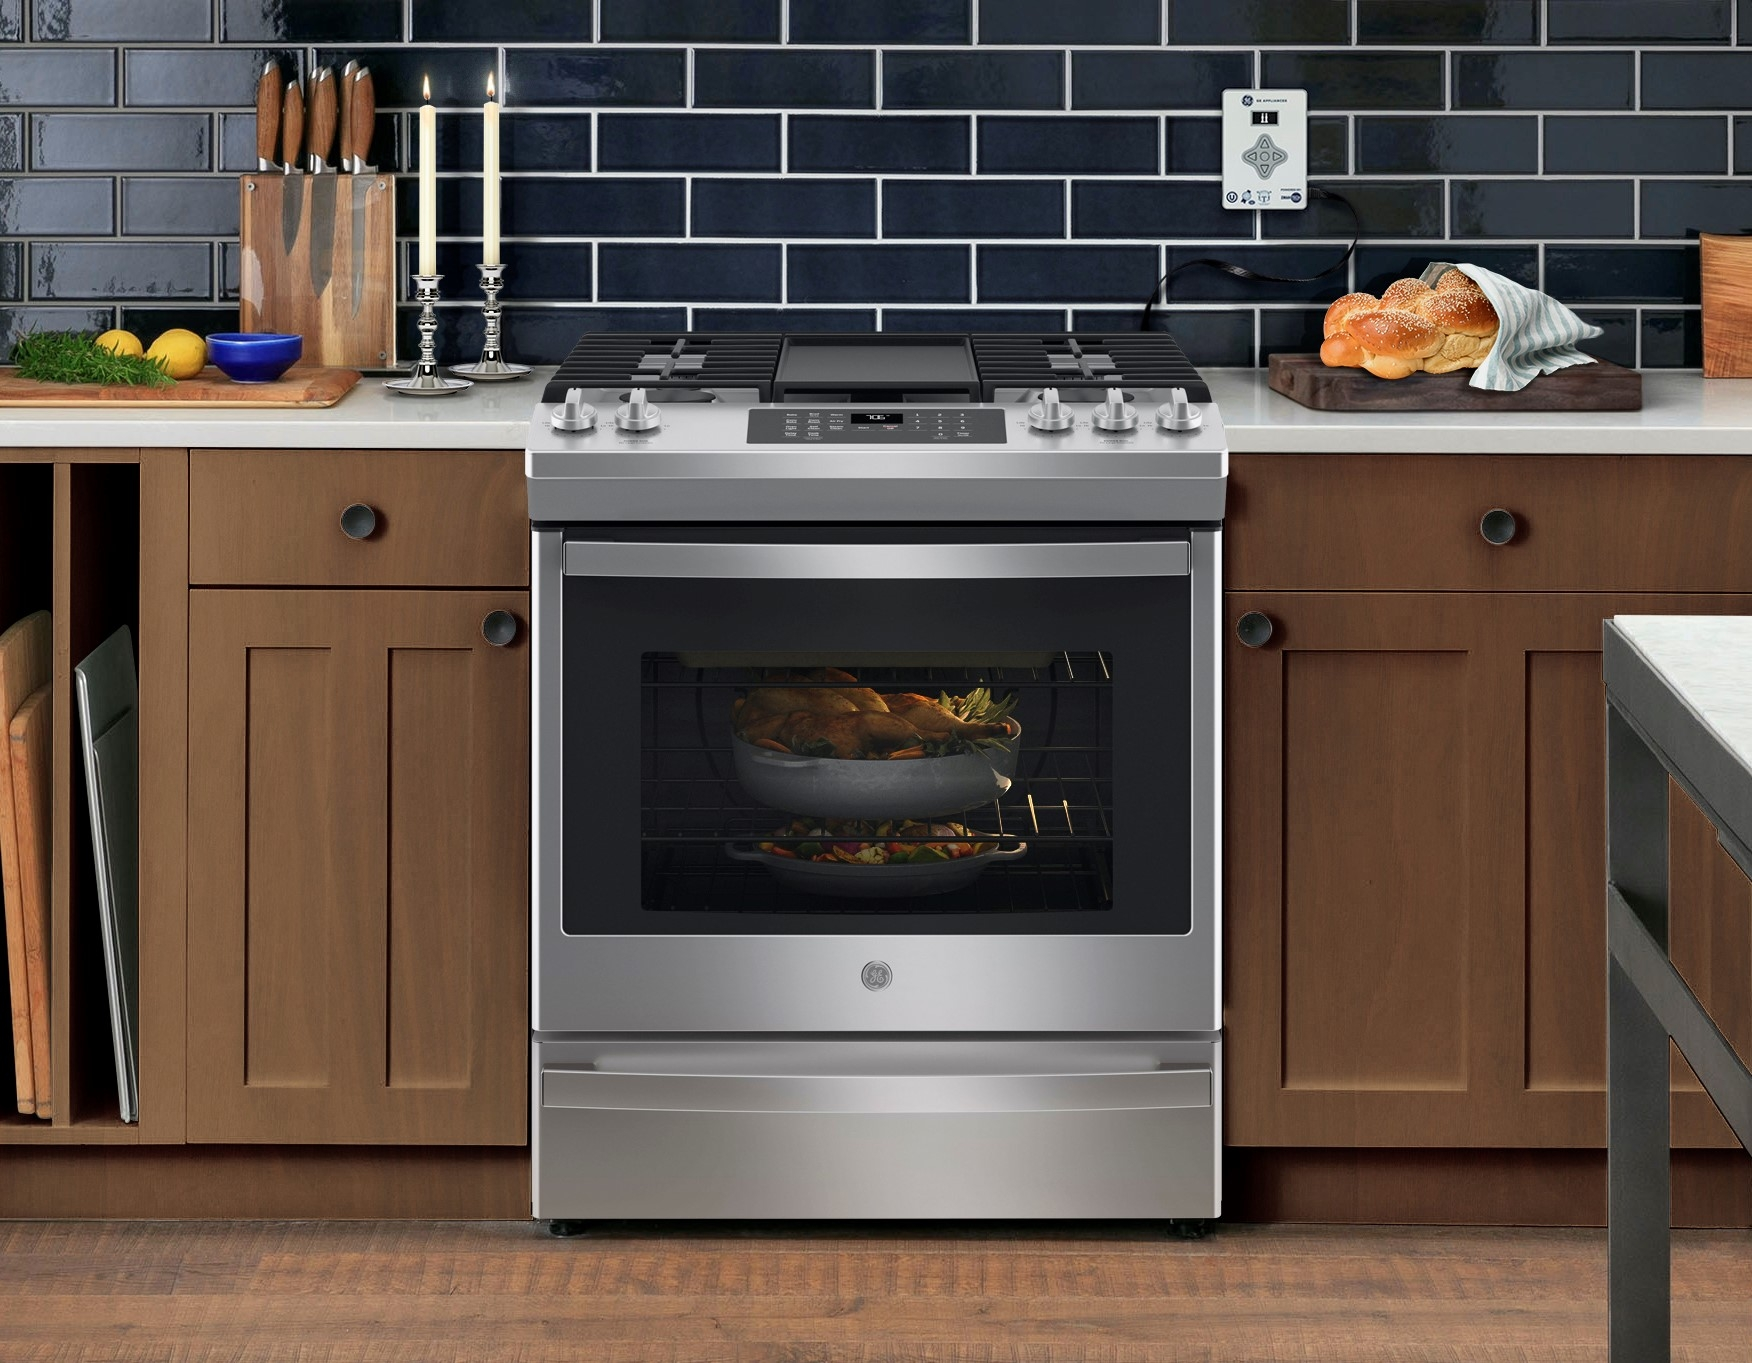 GE Appliances a Haier company in partnership with ZMAN Technologies is now offering ovens and refrigerators that are 100 Kosher-certified when used in conjunction with the Shabbos Keeper.